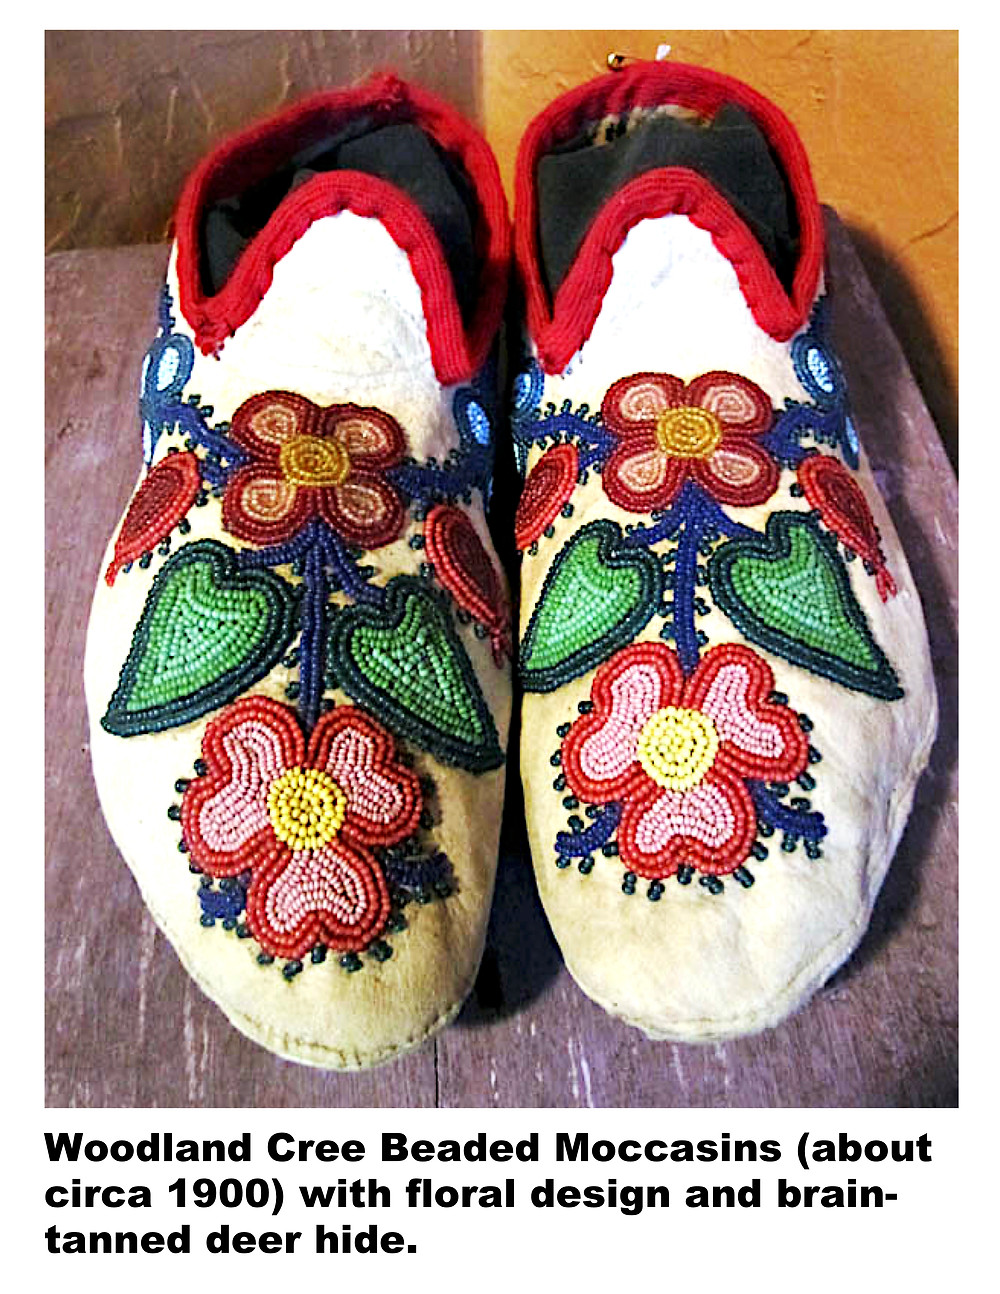 Woodland Cree Beaded Moccasins with floral design and brain-tanned deer hide.